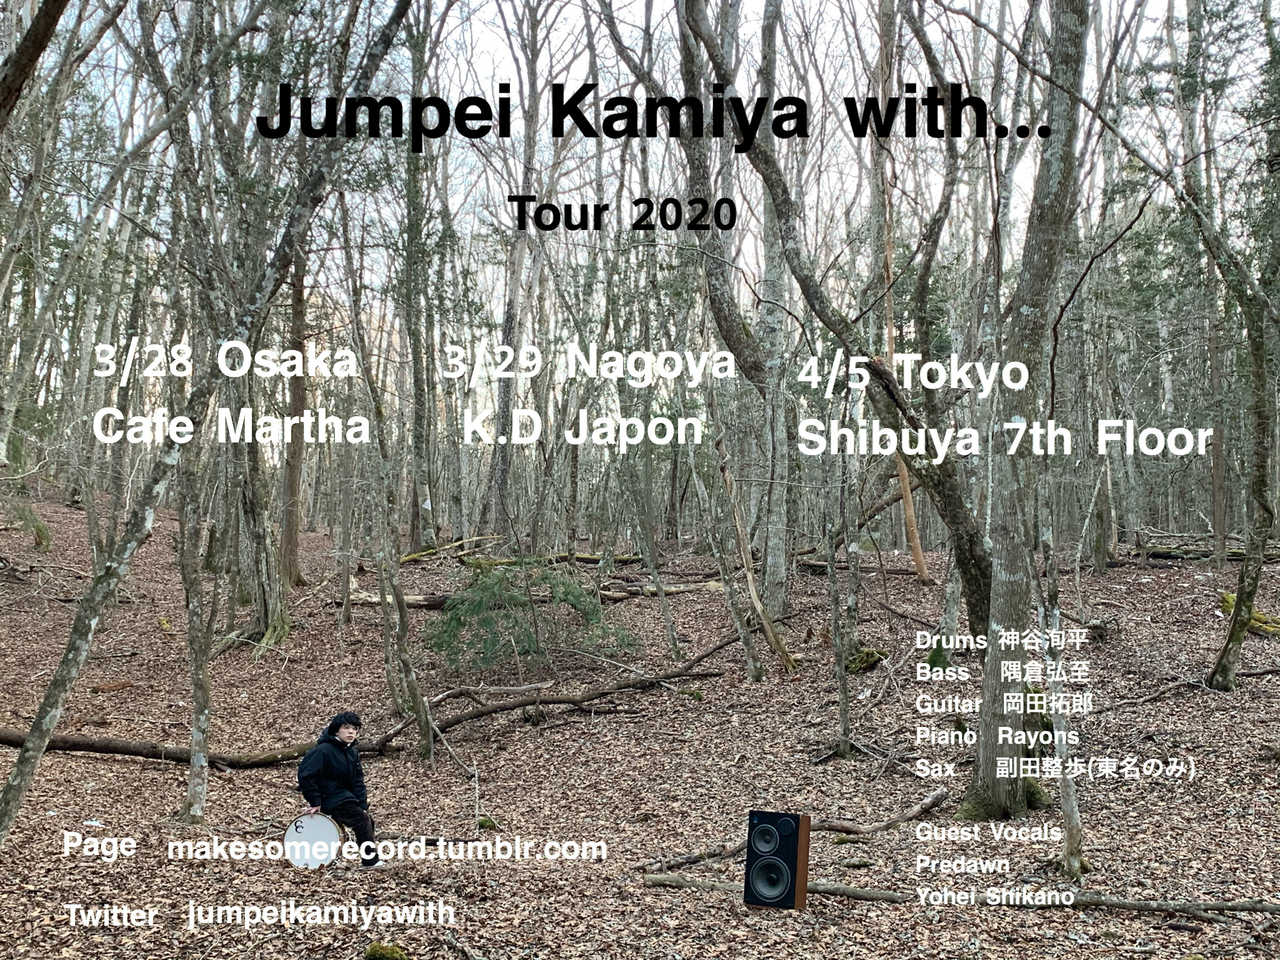 『Jumpei Kamiya with...tour 2020』